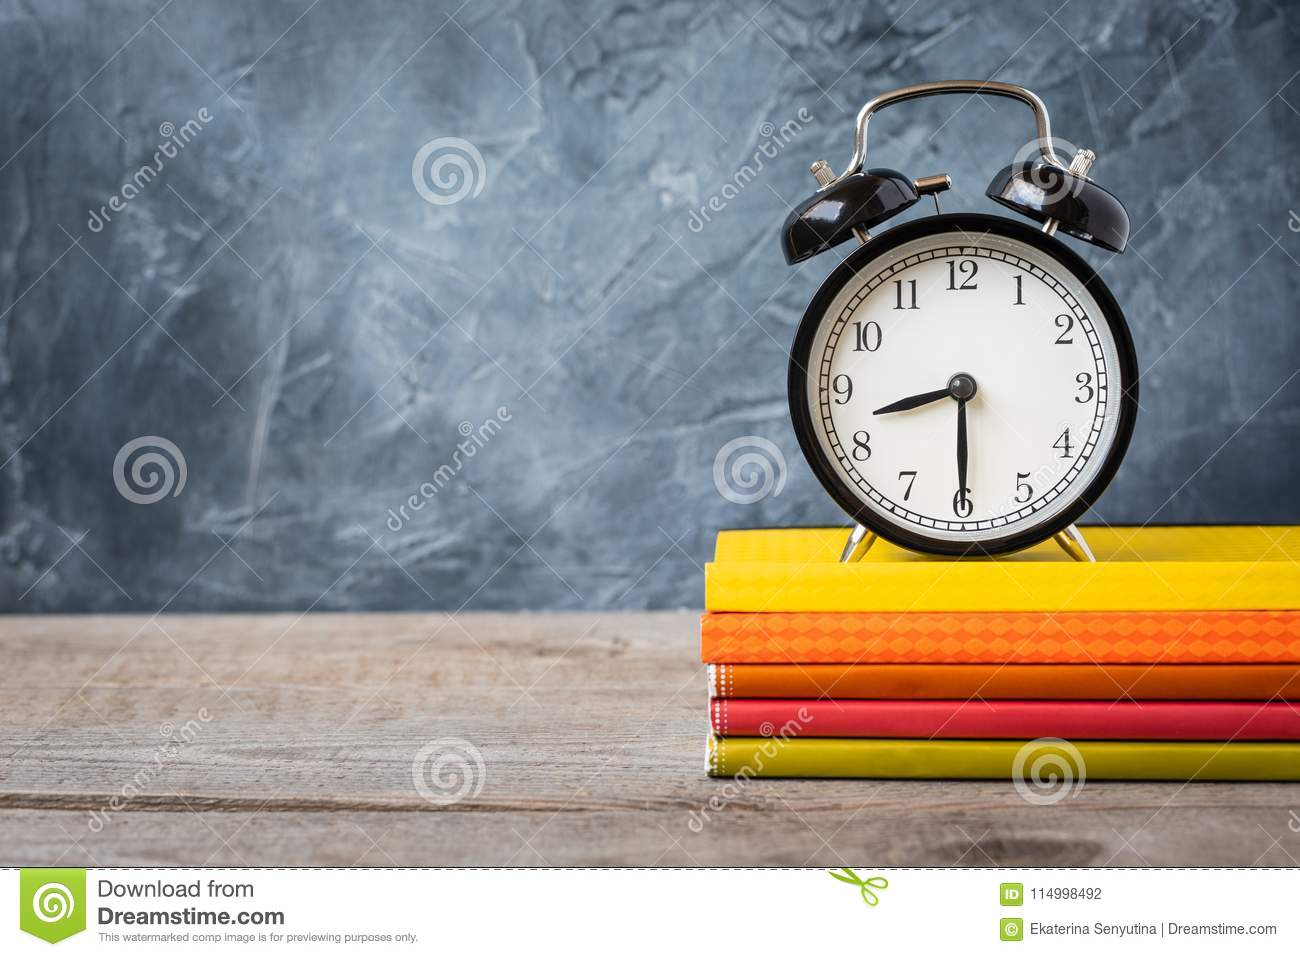 1 September concept postcard, teachers` day, back to school or college, supplies, alarm clock